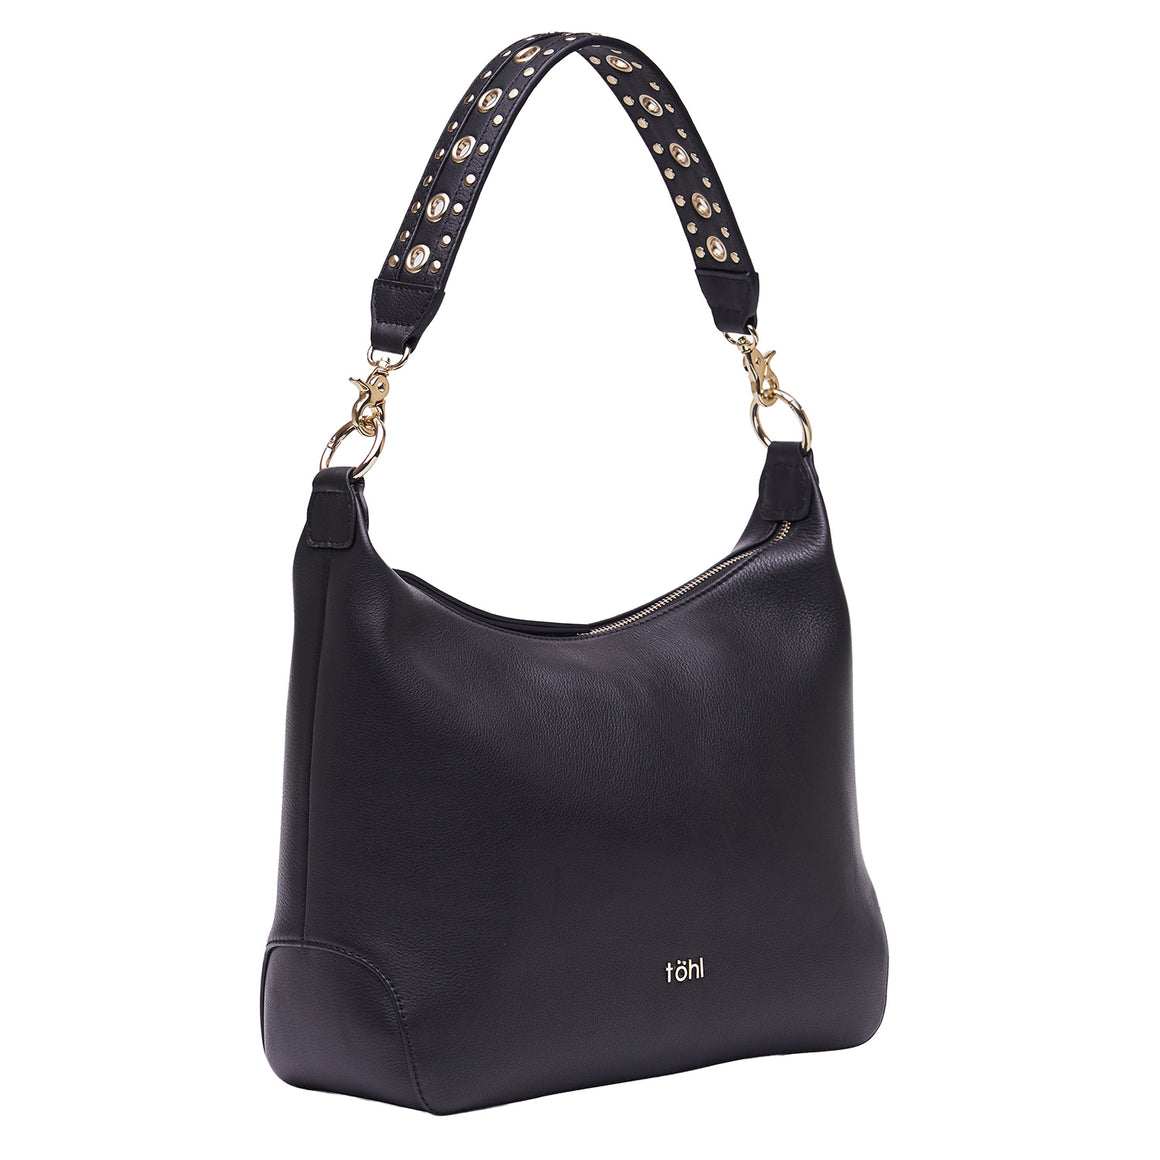 SB 0026 - TOHL FENCHURCH WOMEN'S SHOULDER BAG - CHARCOAL BLACK